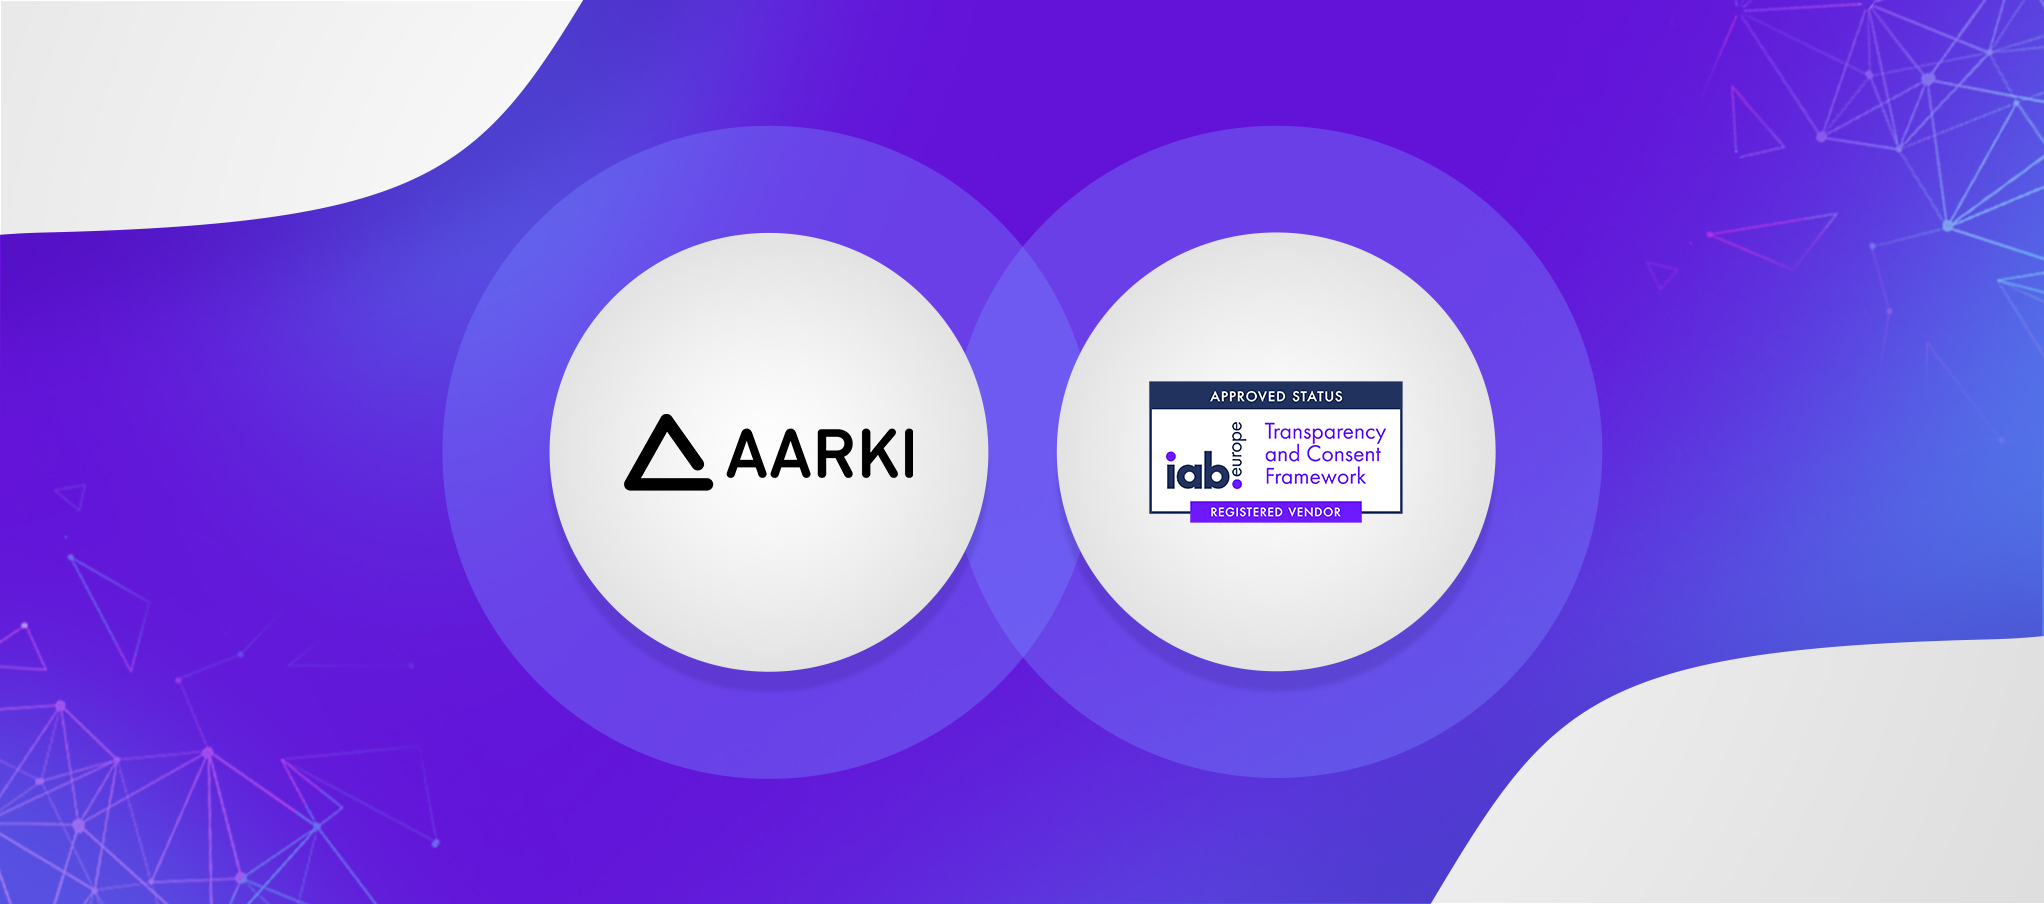 Aarki and IAB Framework logos